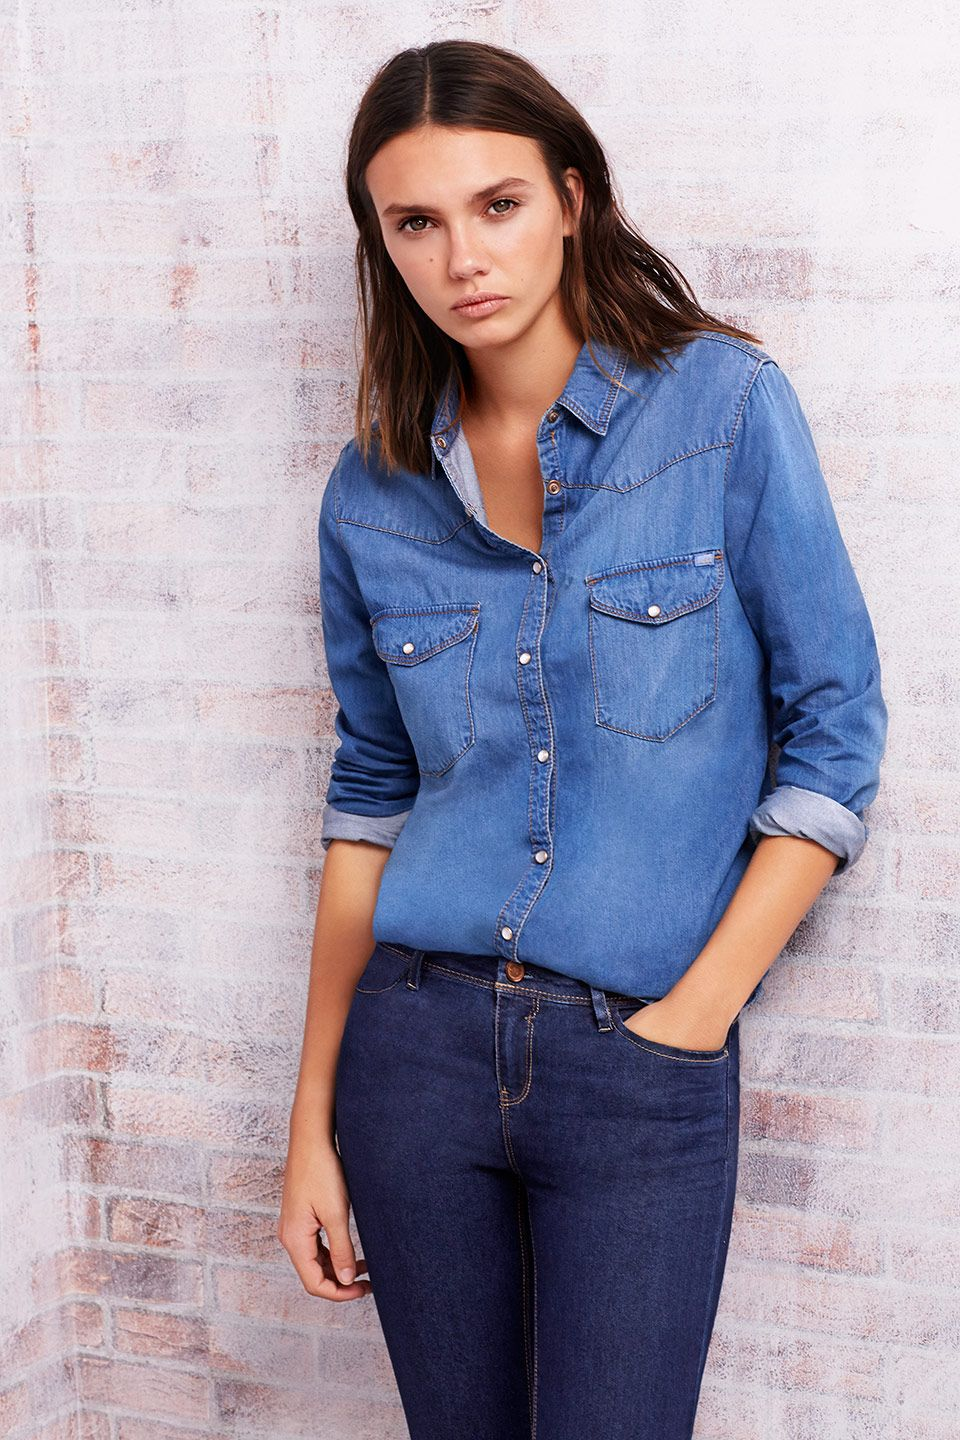 Invierno Otono Moda 2014 Denim Catalogo Camisa 2015 Zara Lefties x4HqwntS7